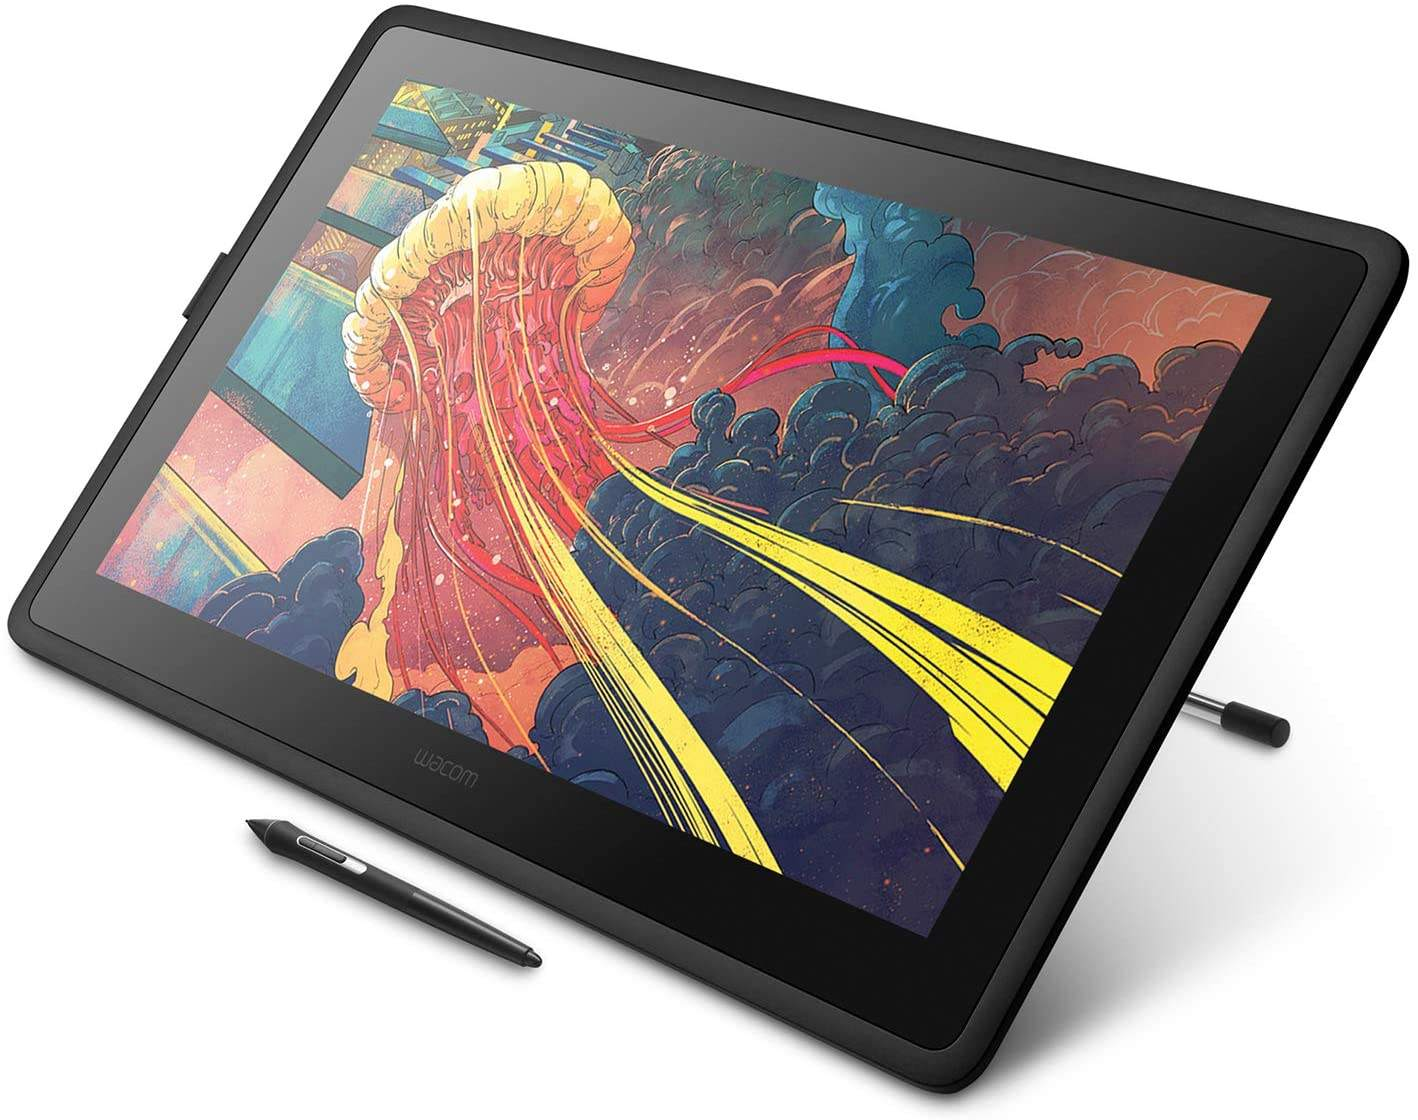 Latest Version - Wac'om Cintiq 22 Drawing TabletとHD Screen Graphic Monitor